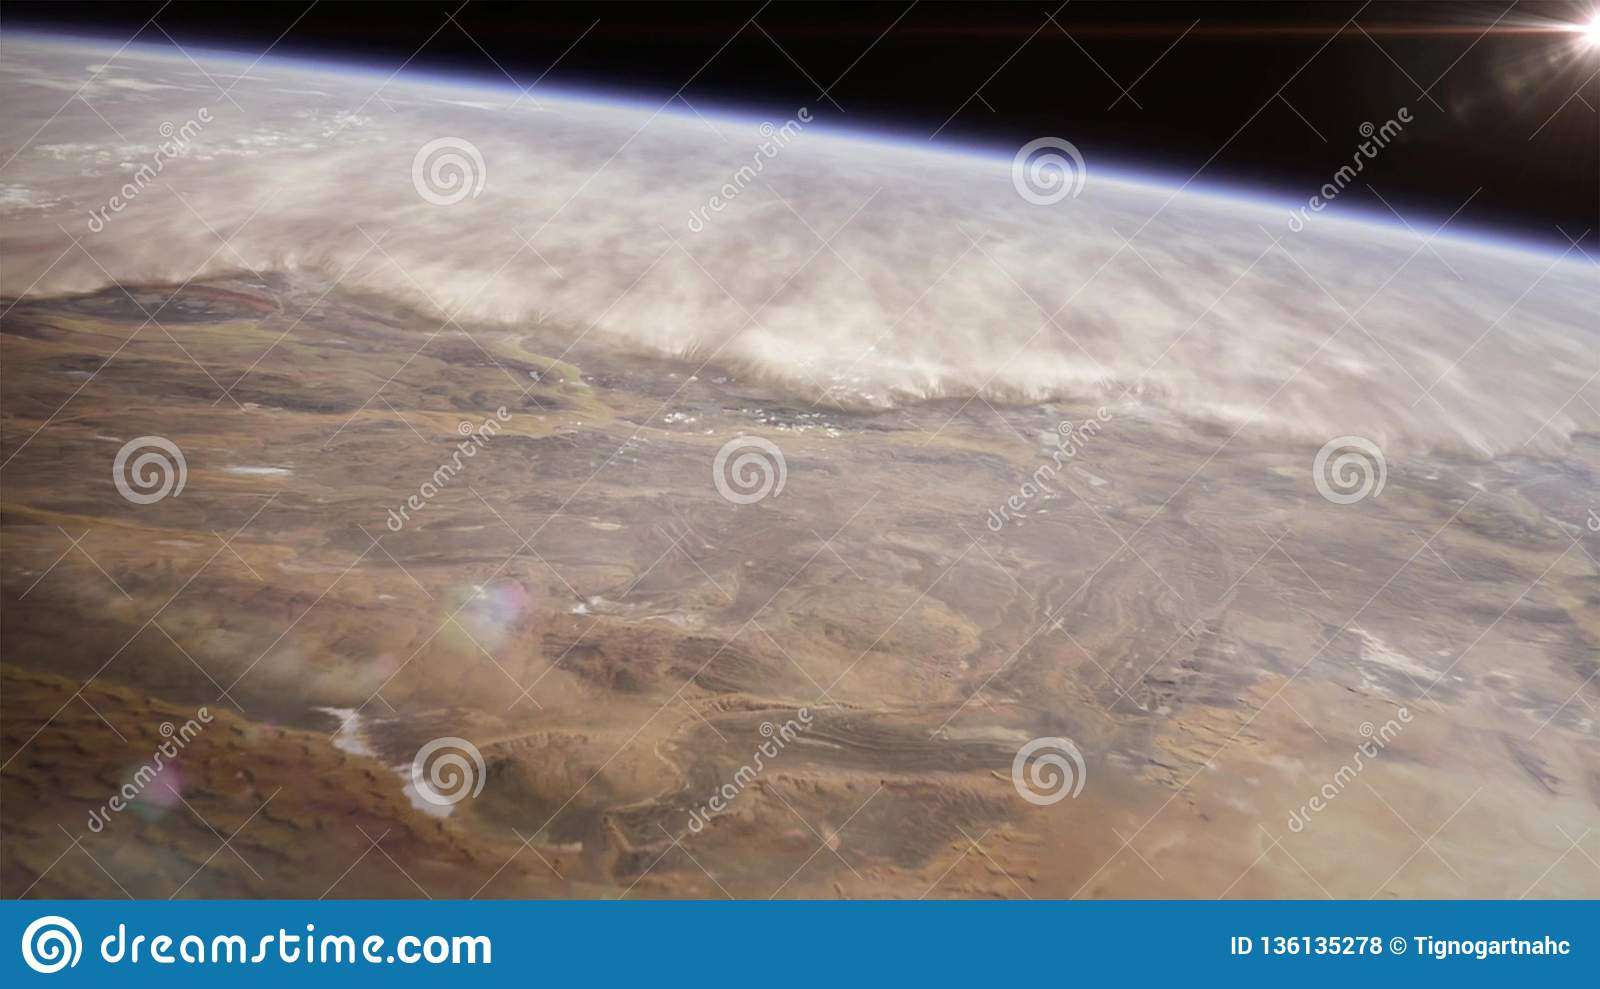 High altitude view of the Earth in space. The Namib desert in the south-west Africa